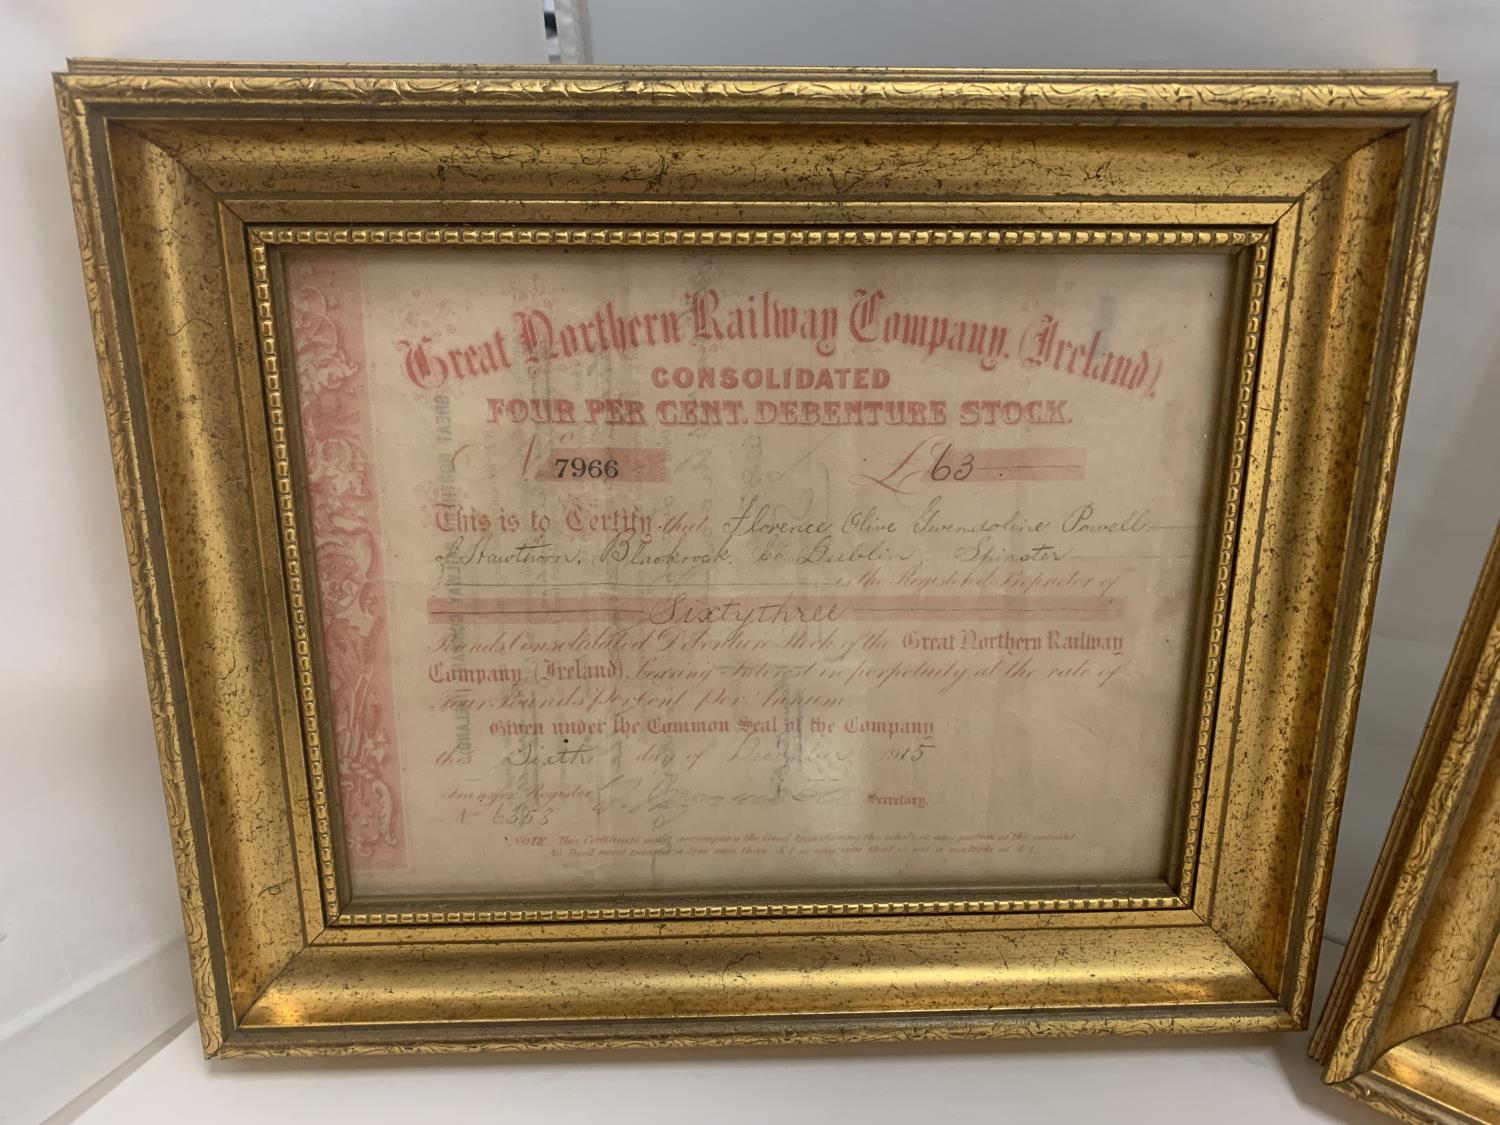 TWO GILT FRAMED GREAT NORTHERN RAILWAY SHARES CERTIFICATES - Image 3 of 6